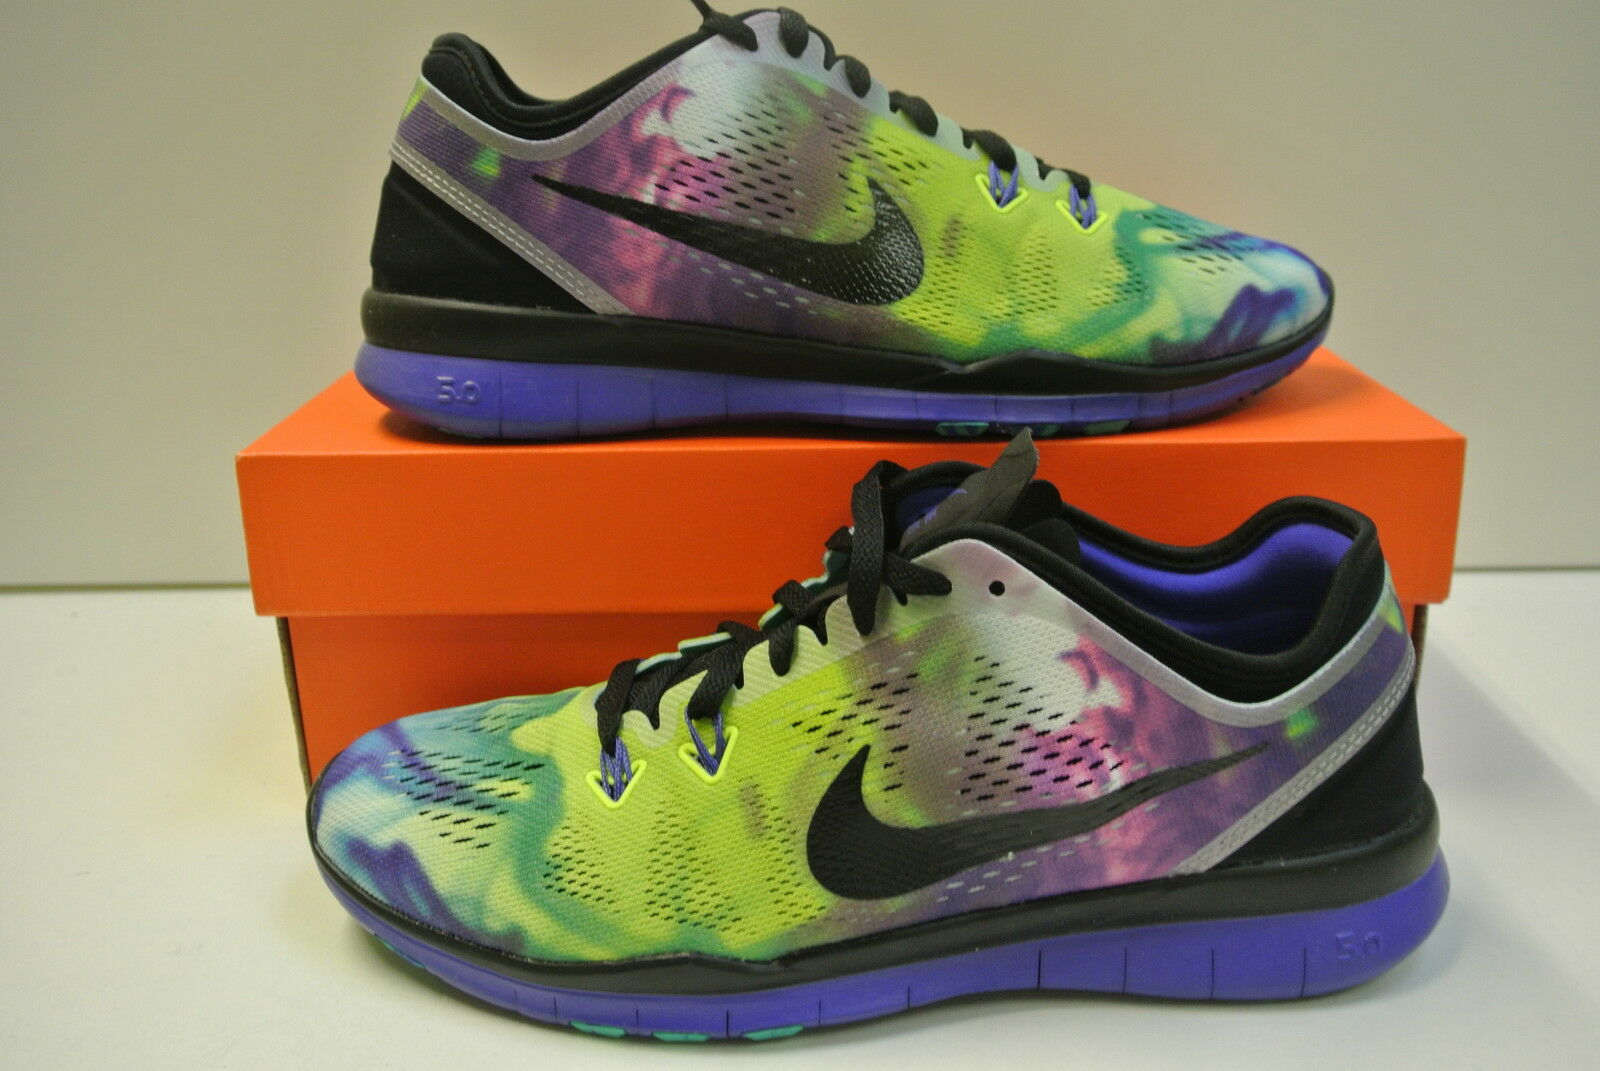 Wmns Nike Free 5.0 TR FIT 5 PRT Talla Selectable New & Original Box 704695 002